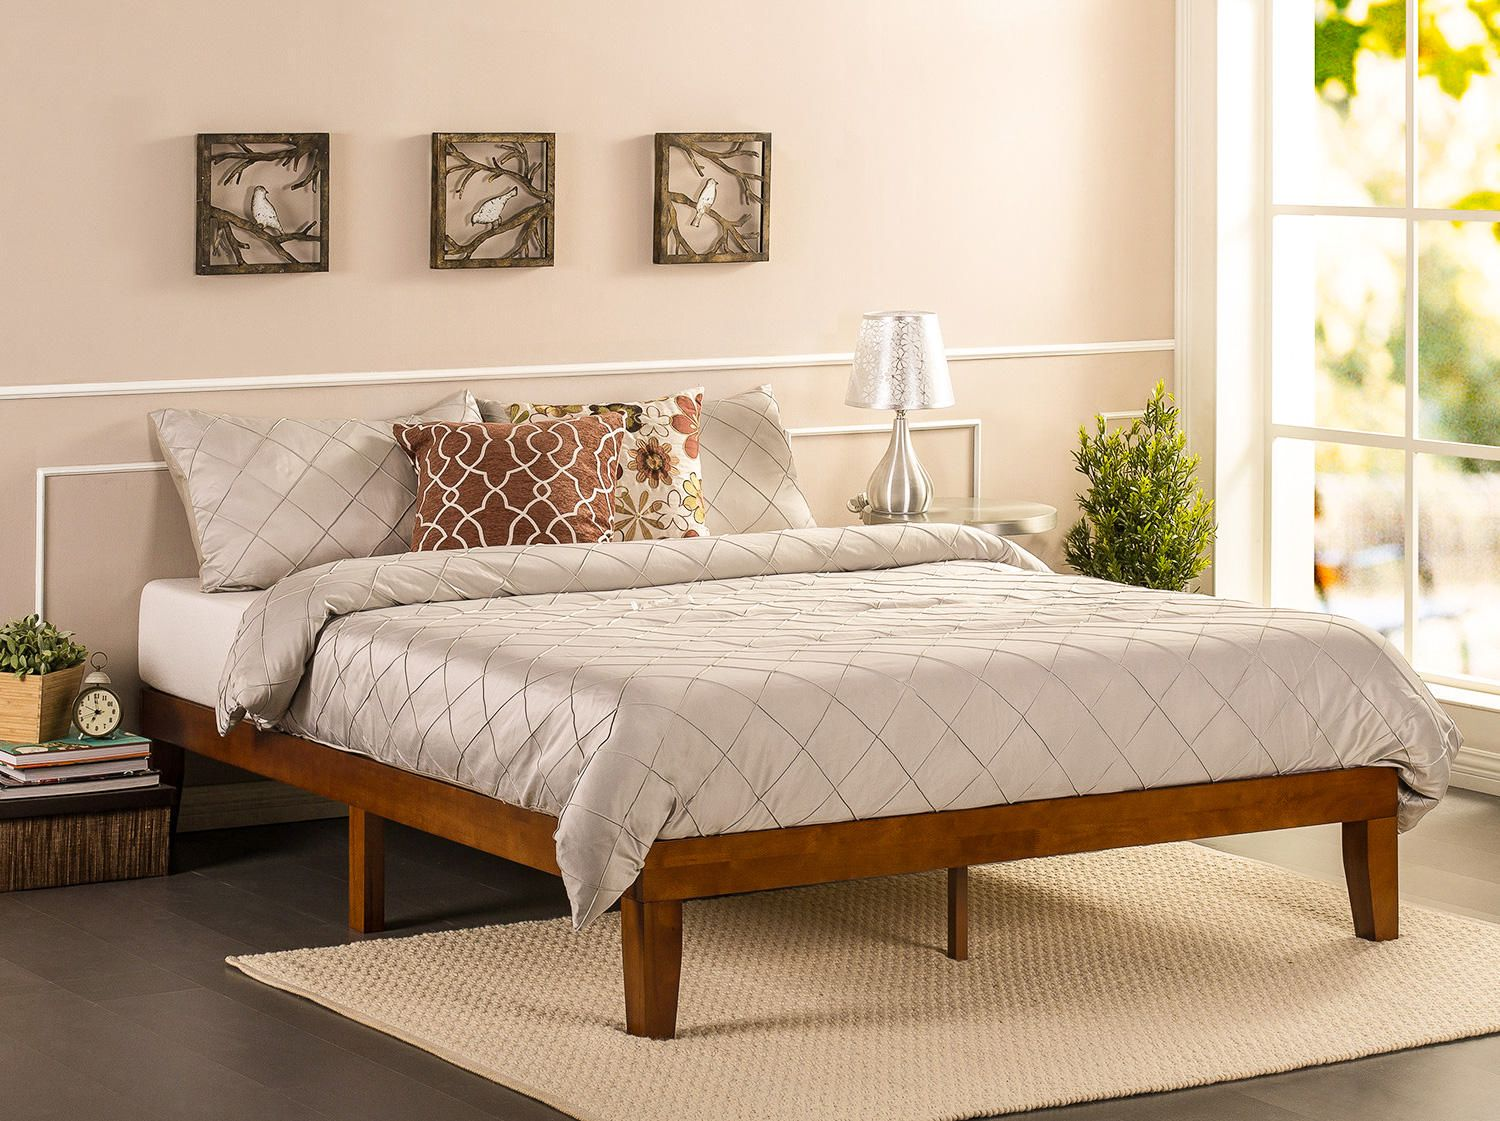 Picture of: Zinus Solid Wood 12 Platform Bed Mattress Foundation Wood Slats Easy Assembly Cherry Finish Walmart Canada